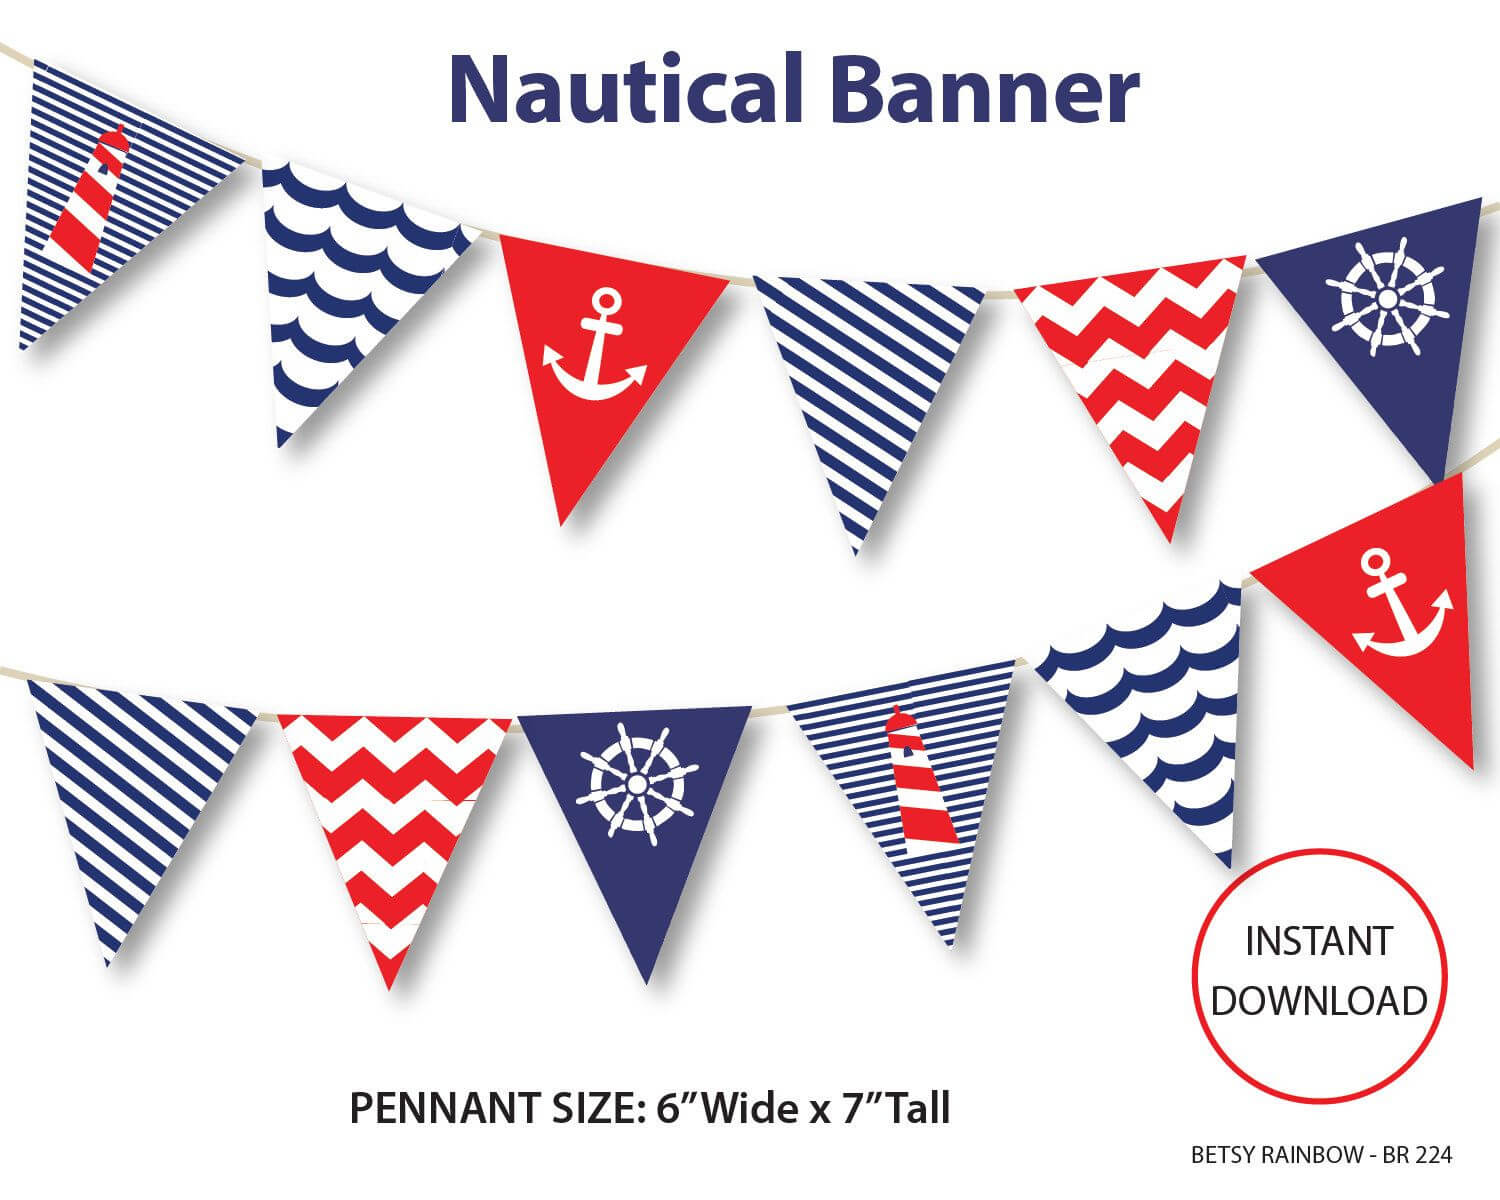 Nautical Banner, Printable Banner, Nautical, Diy Party, Navy pertaining to Nautical Banner Template